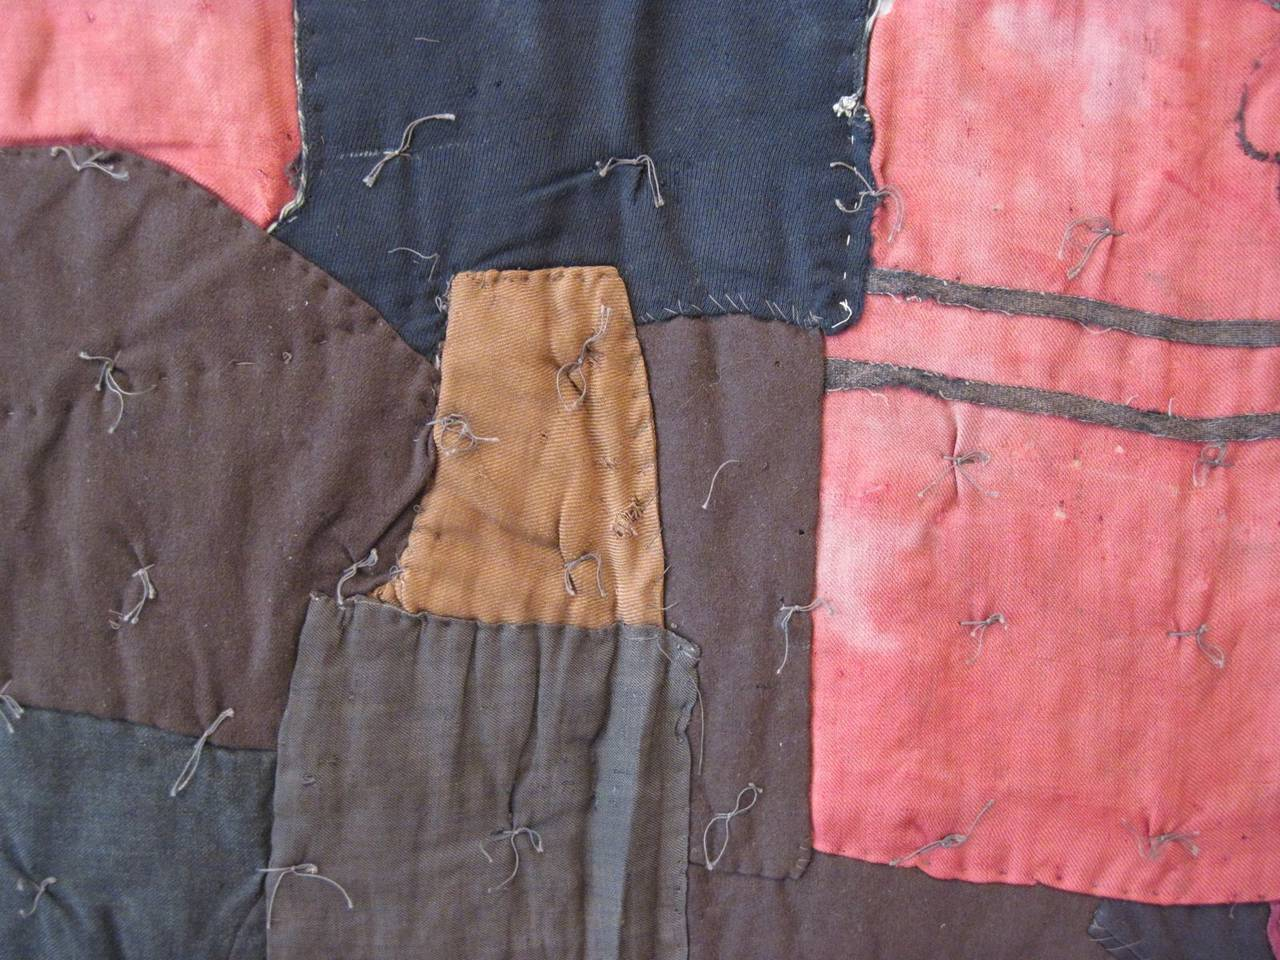 An exceptional African-American quilt made in rural Mcintosh County, Georgia, no later than 1900 and most likely somewhat earlier. This incredible piece of handiwork has much in common with the well-known quilts of Gee's Bend, but is a much earlier,